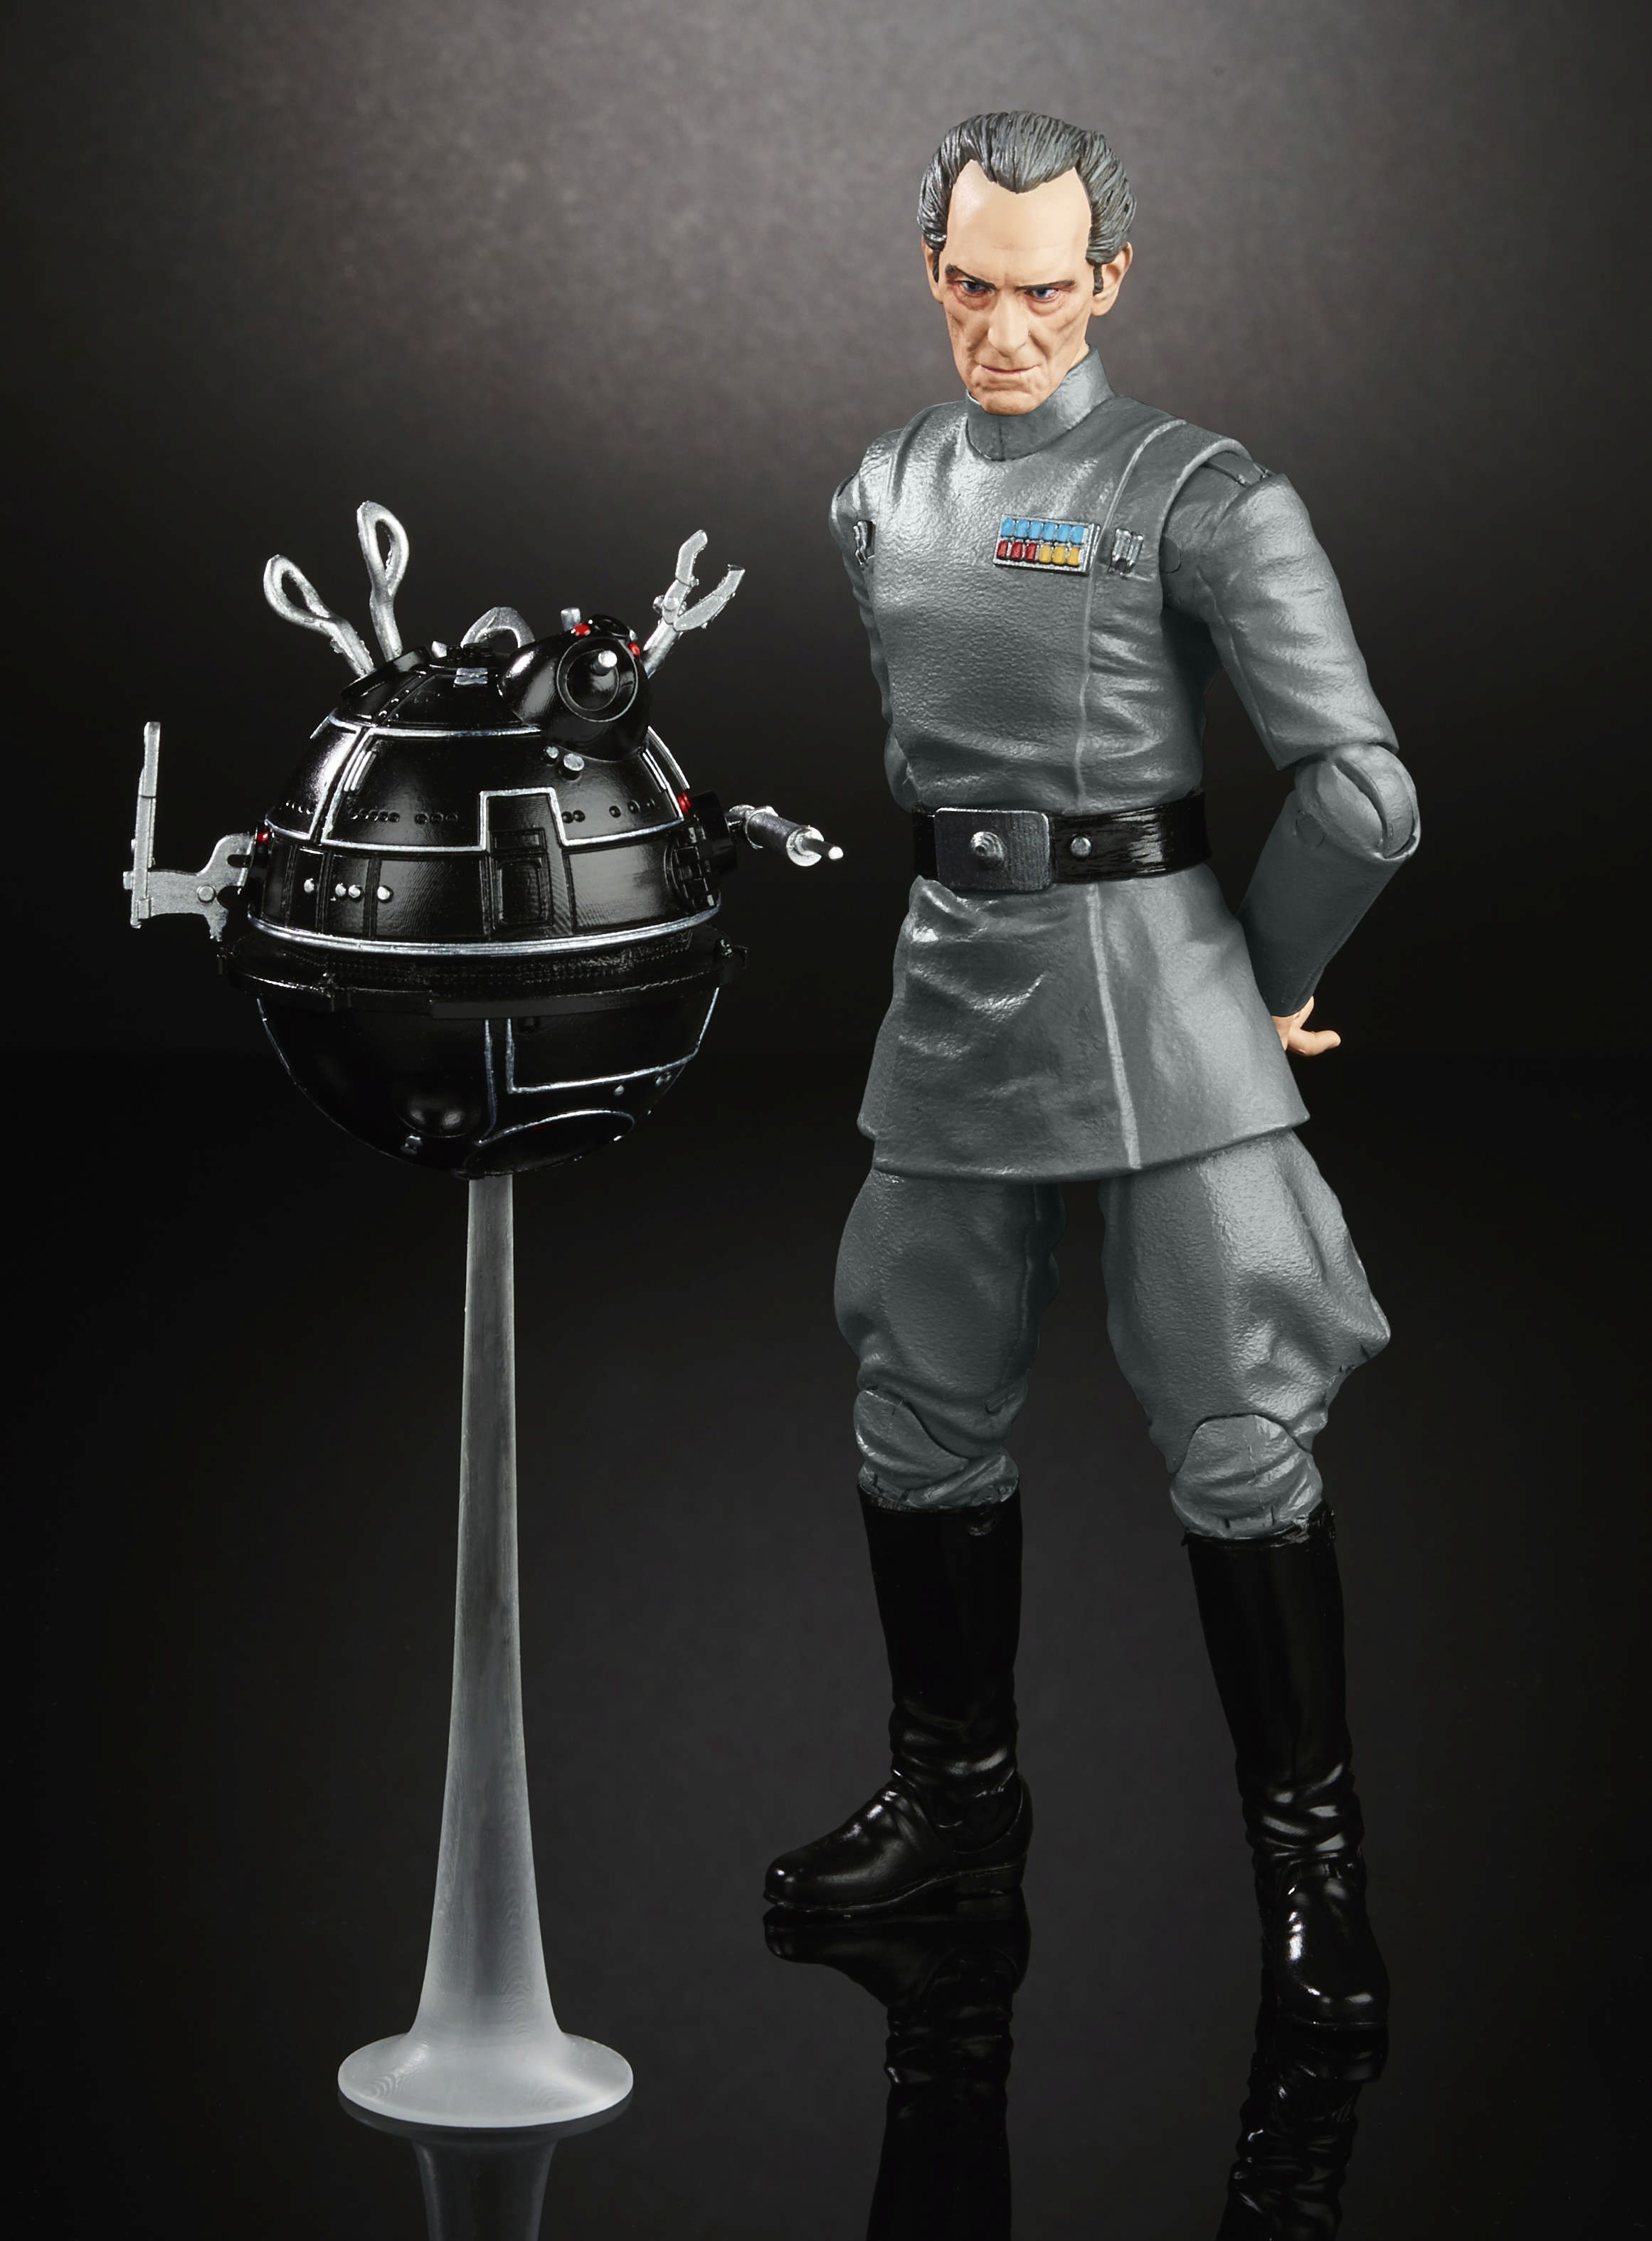 Official Images Out Of Celebration Of Hasbro S Black Series Figures Star Wars Black Series Black Series Star Wars Action Figures